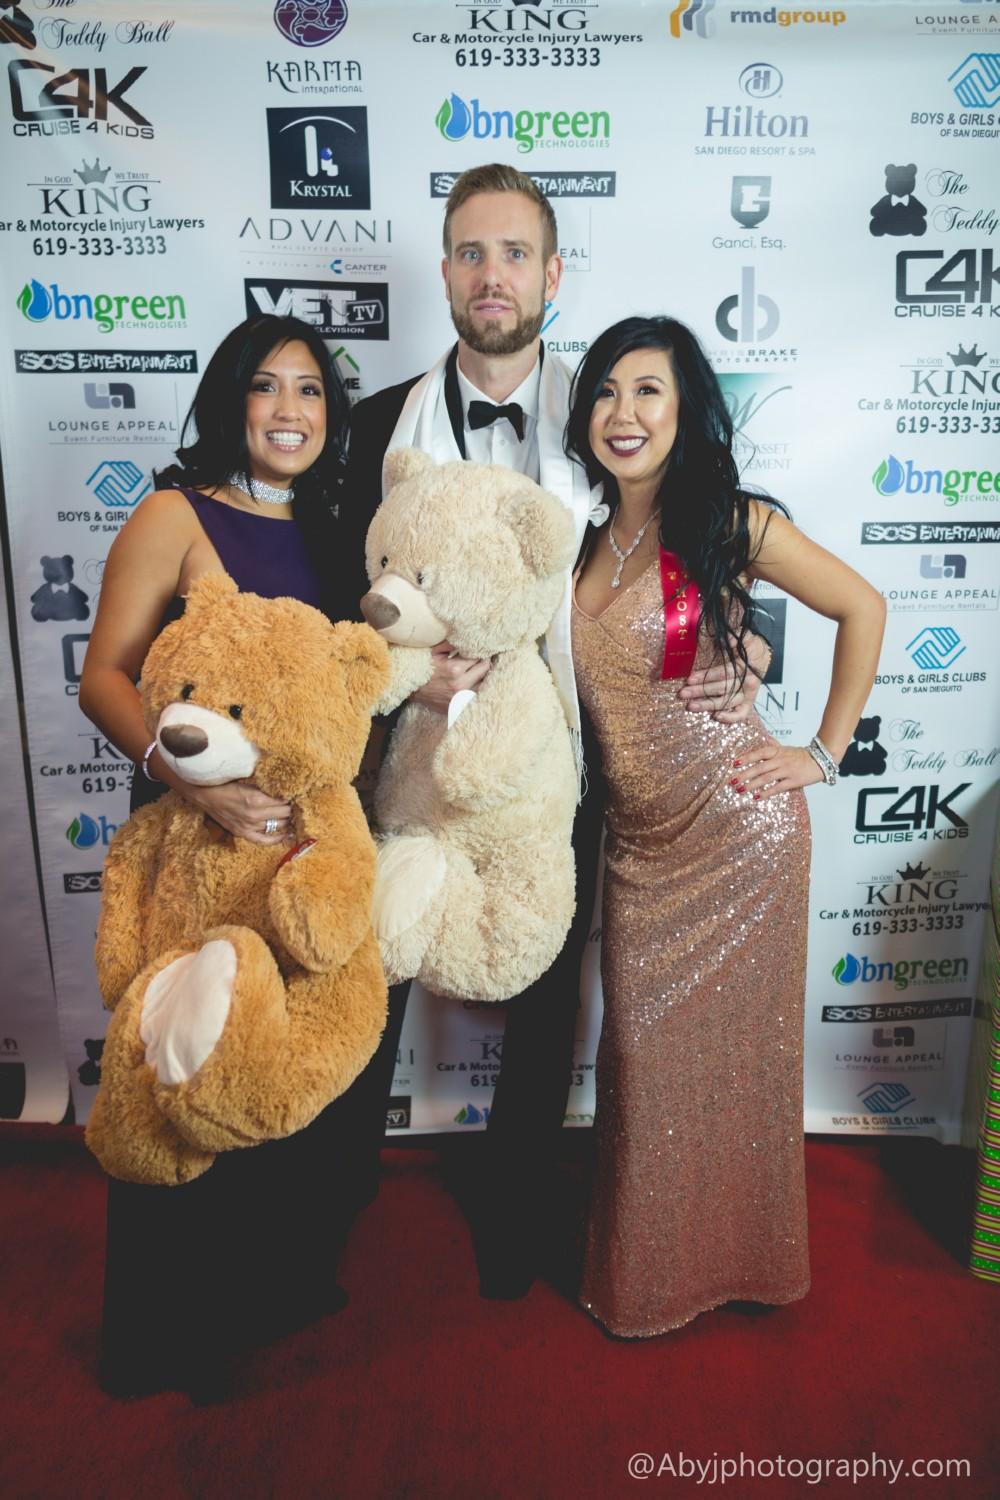 ABYJ_Photography_2016_Teddy_Ball - 239.jpg